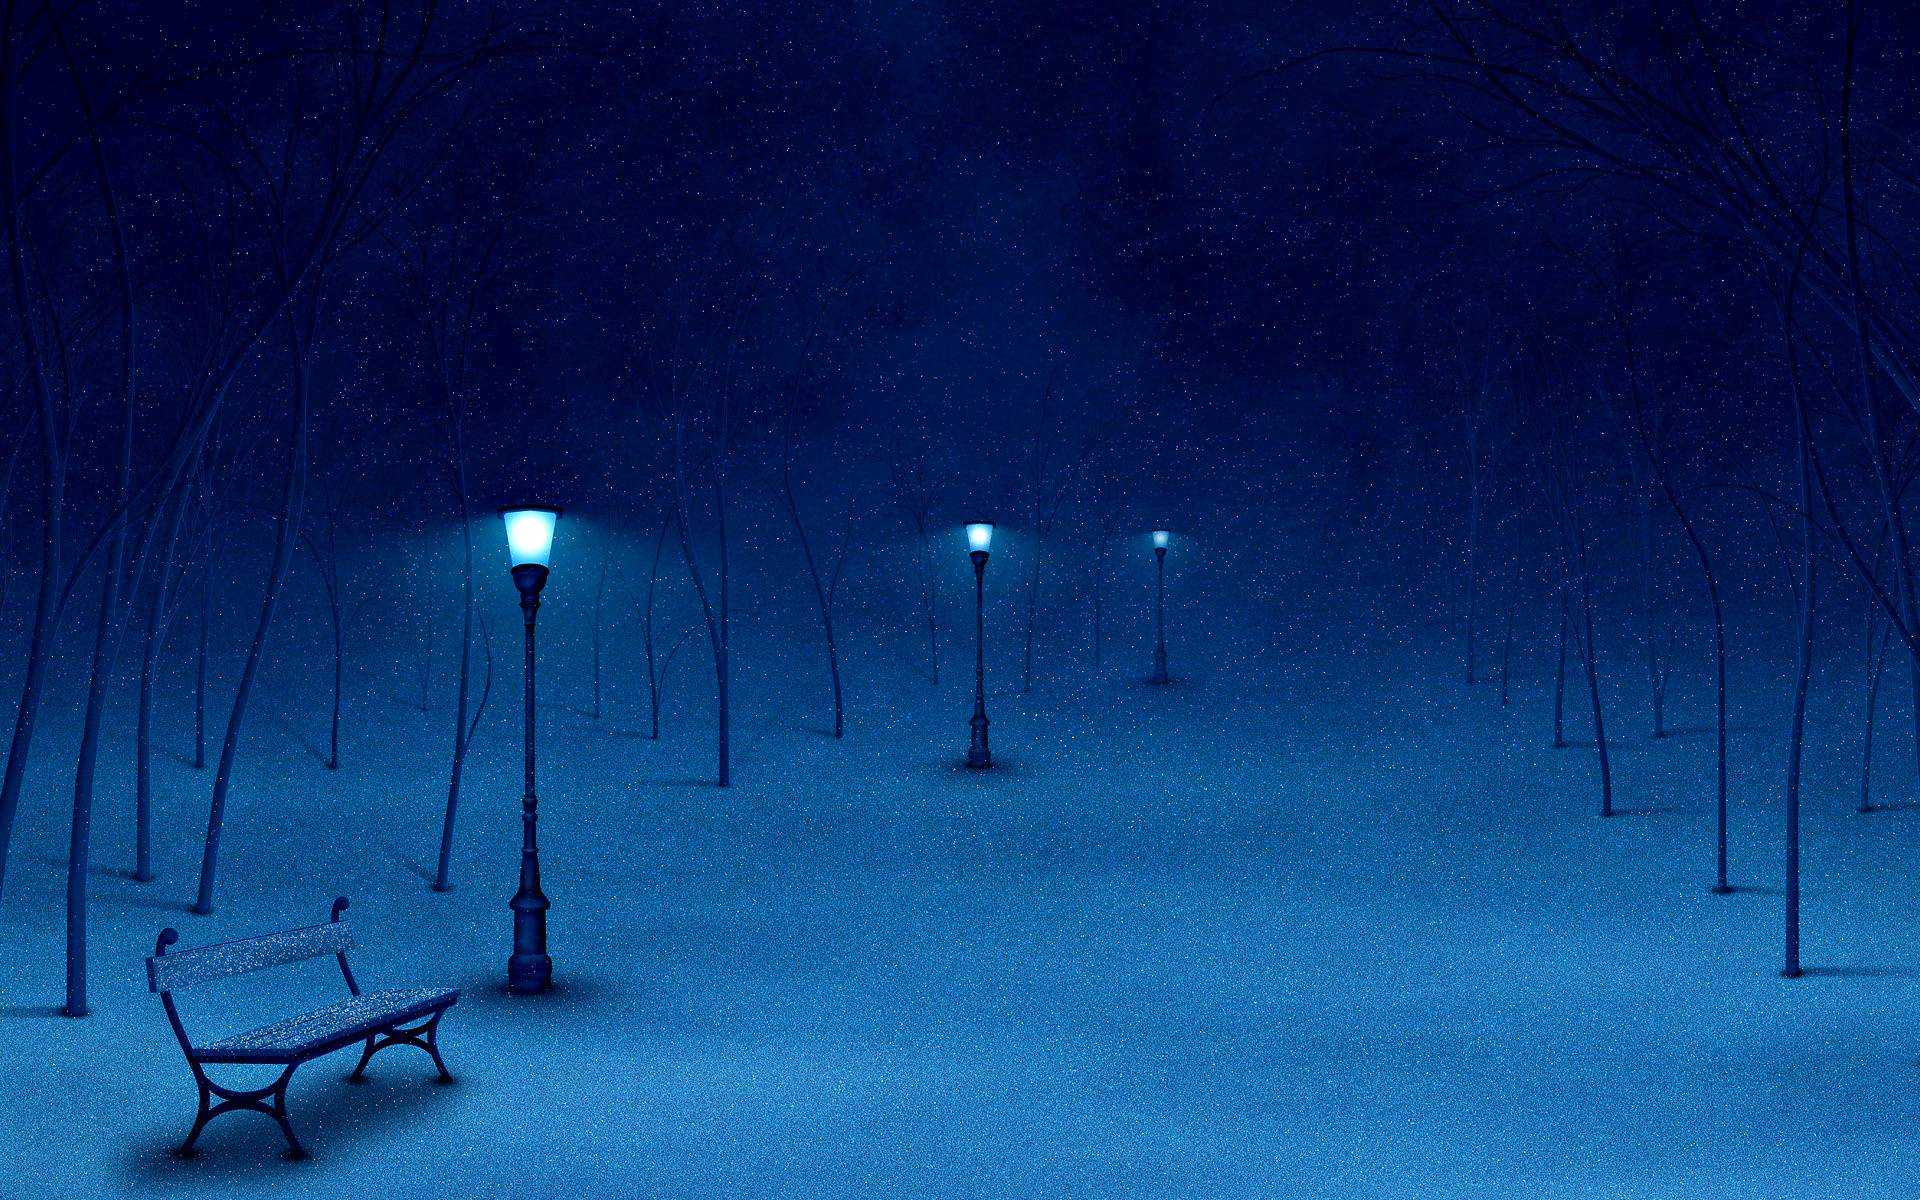 Wallpapers For > Winter Night Backgrounds Hd